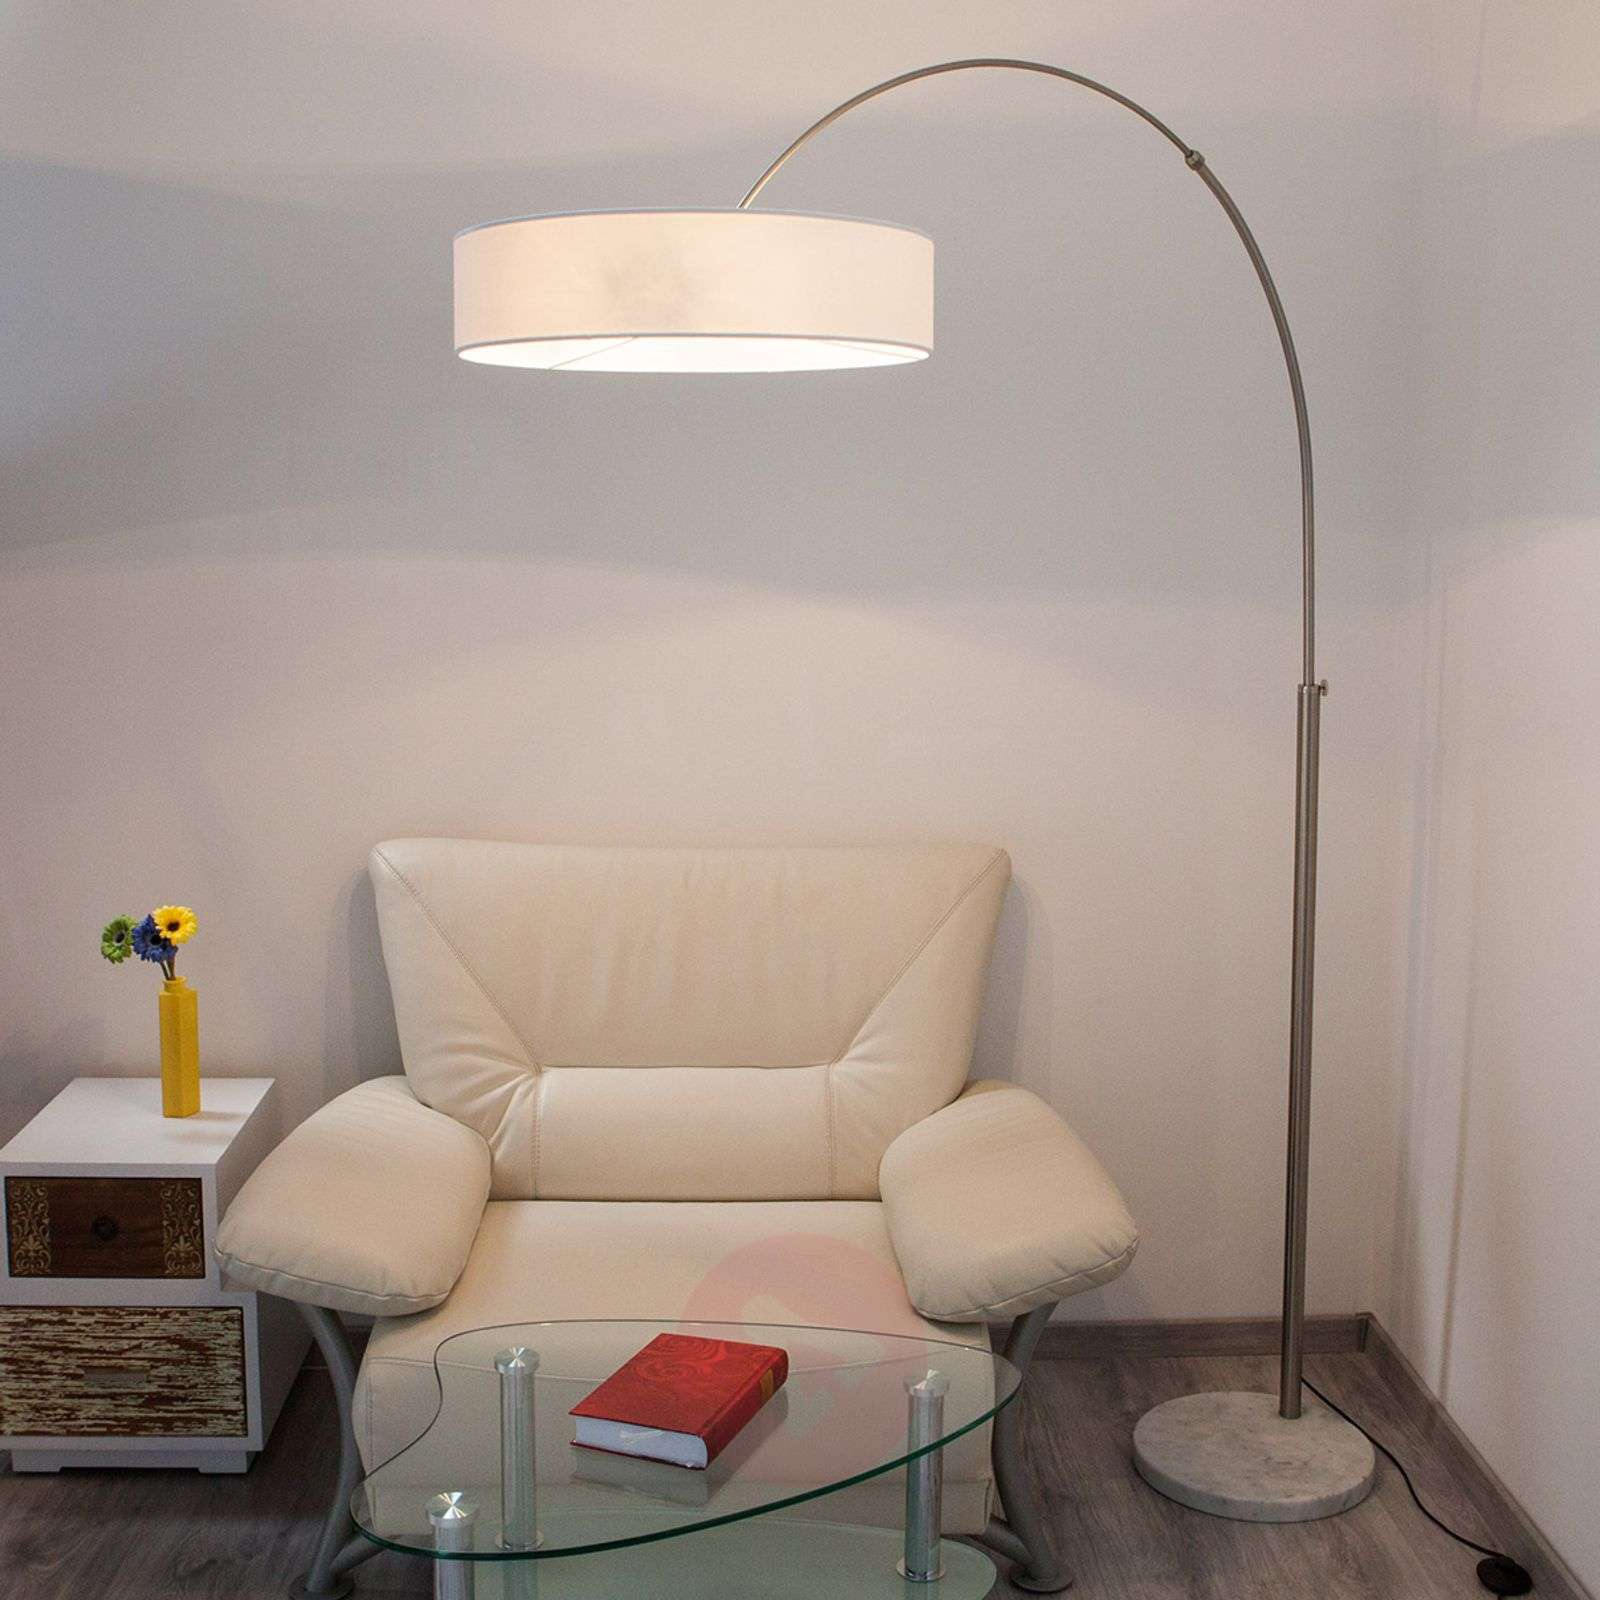 White shing fabric floor lamp lights white shing fabric floor lamp 9620142 01 aloadofball Choice Image